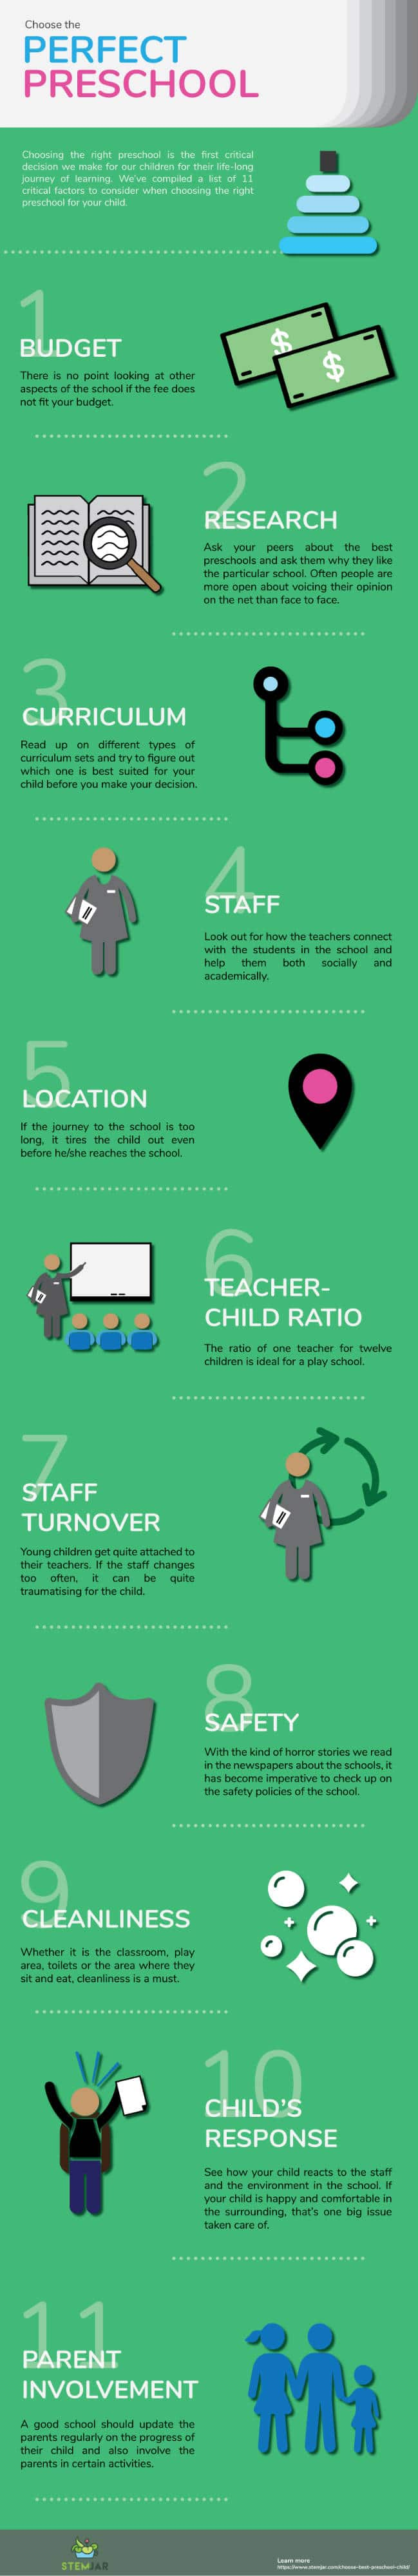 11 Critical factors to consider before choosing the best preschool for your child. Decide your budget, do your research on various schools, decide on best-suited curriculum for your child, check the quality of teaching staff, location of preschool, teacher to child ratio, cleanliness, safety of your child